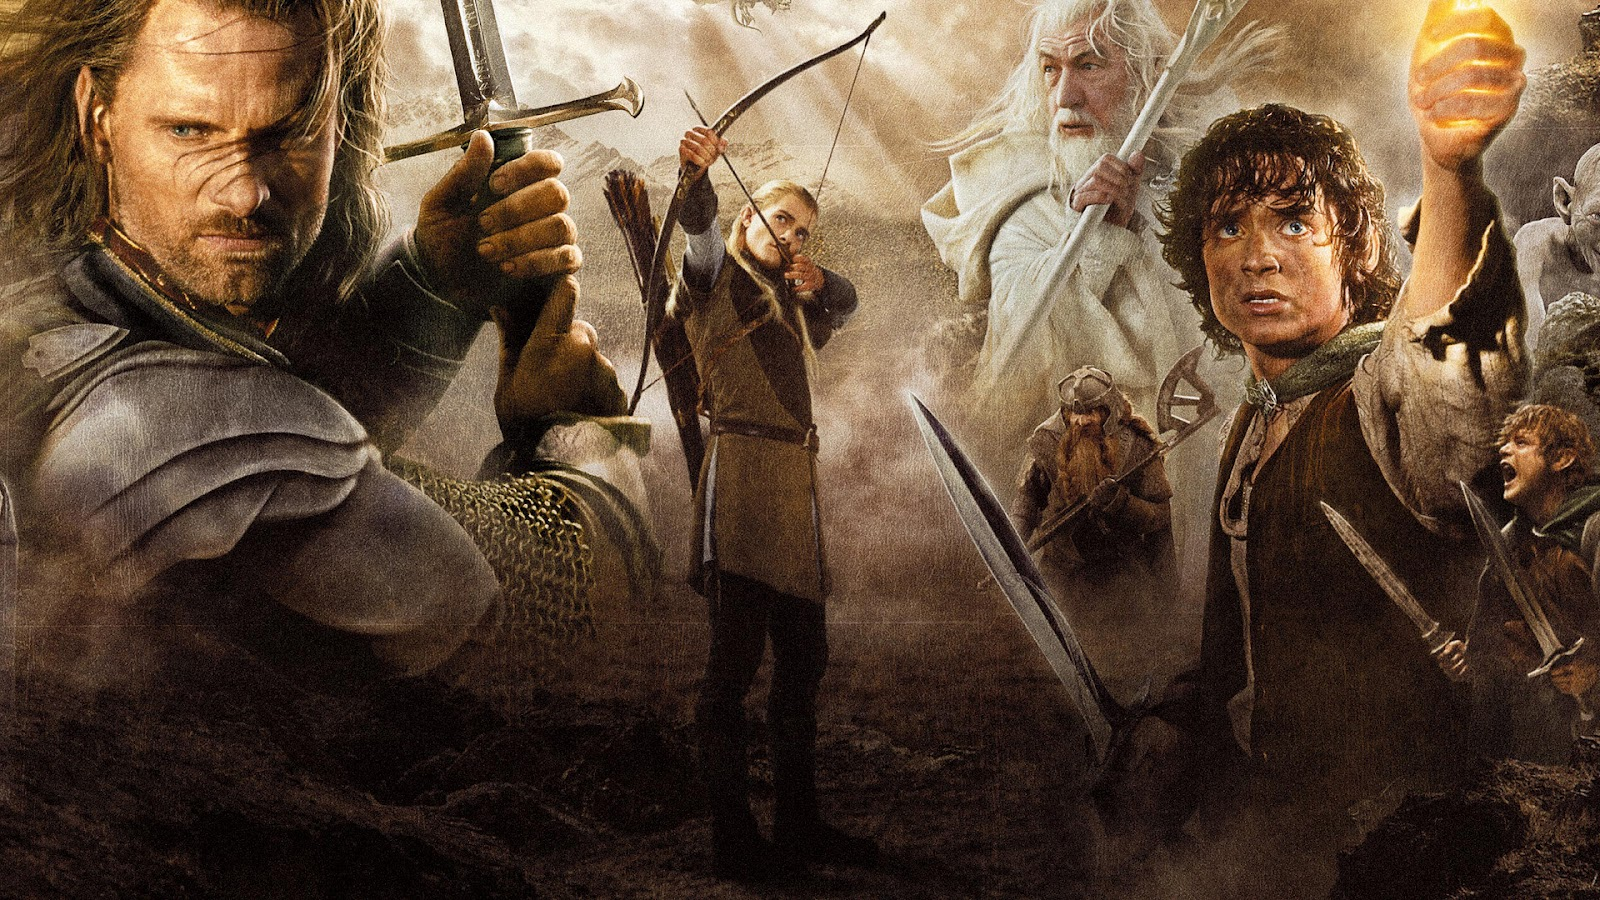 a comparison of the arthurian legends and jrr tolkiens the fellowship of the ring Film, the lord of the rings: the fellowship of the ring in 2001, and the these and more to establish generic differences drawing on western folk- and fairy- tale traditions, norse and celtic myth, arthurian legend, and medieval romances tolkien himself was a notable philologist at oxford university and an authority on.